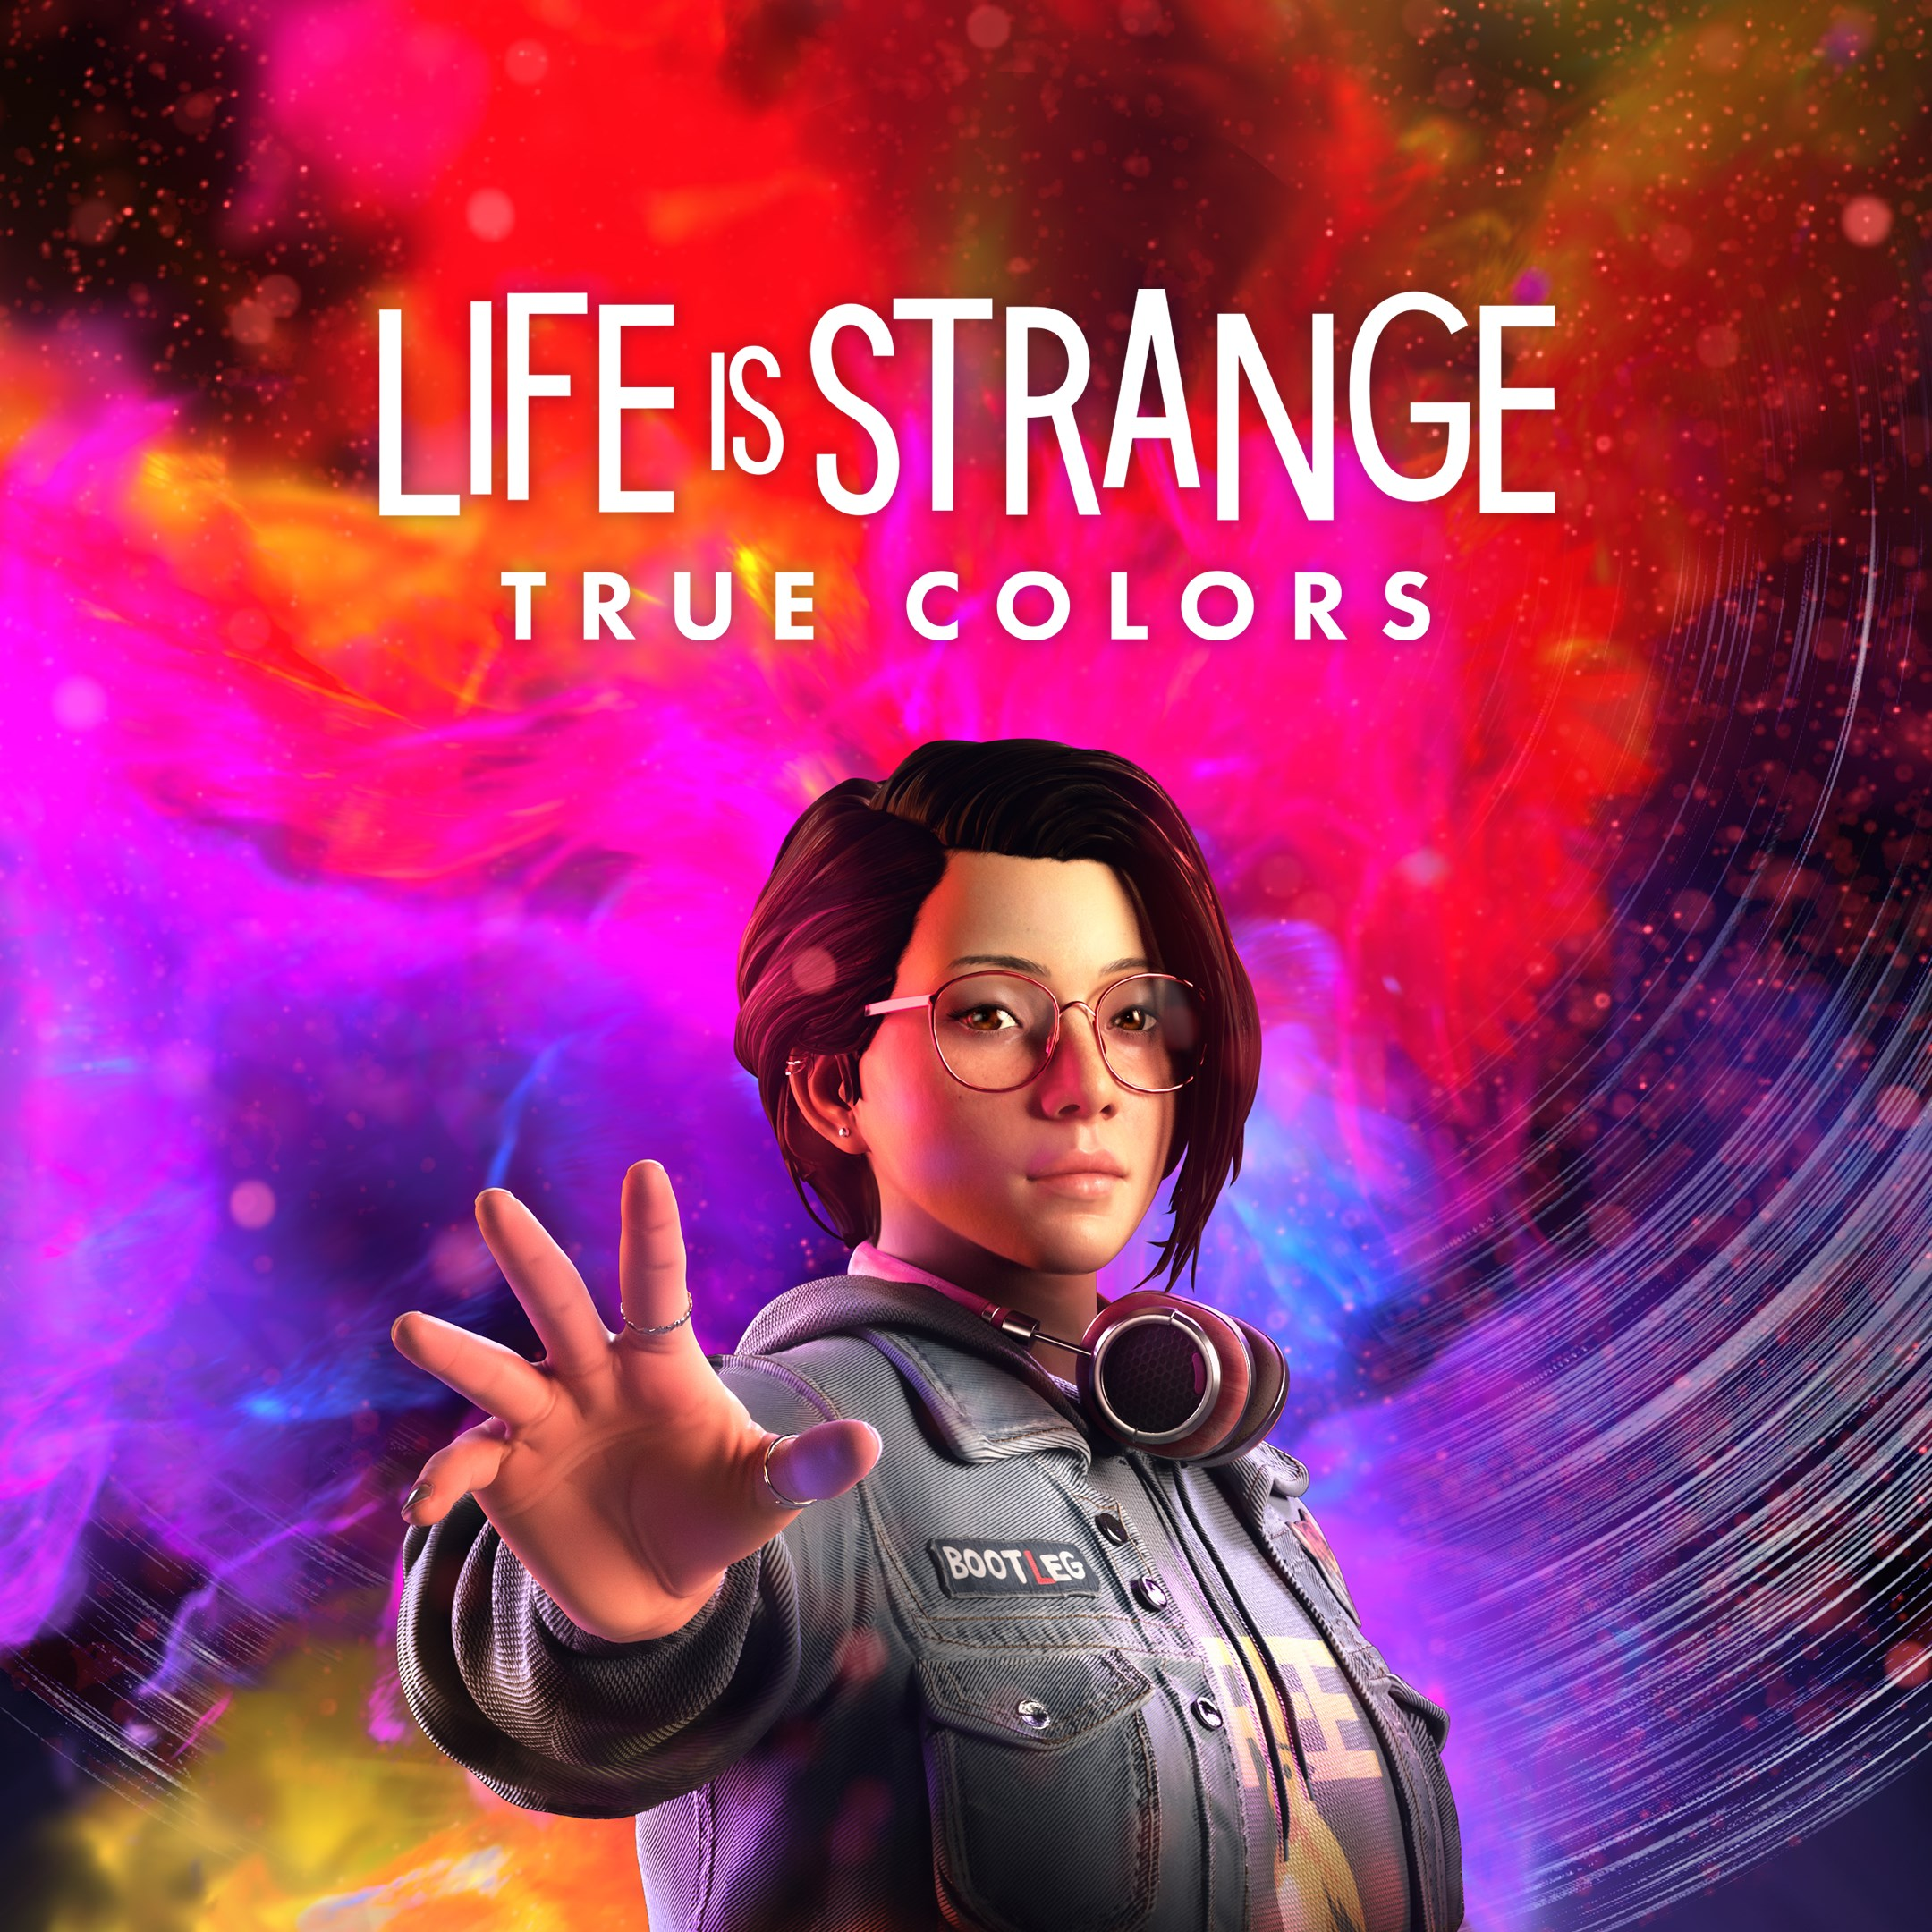 Image for Life is Strange: True Colors